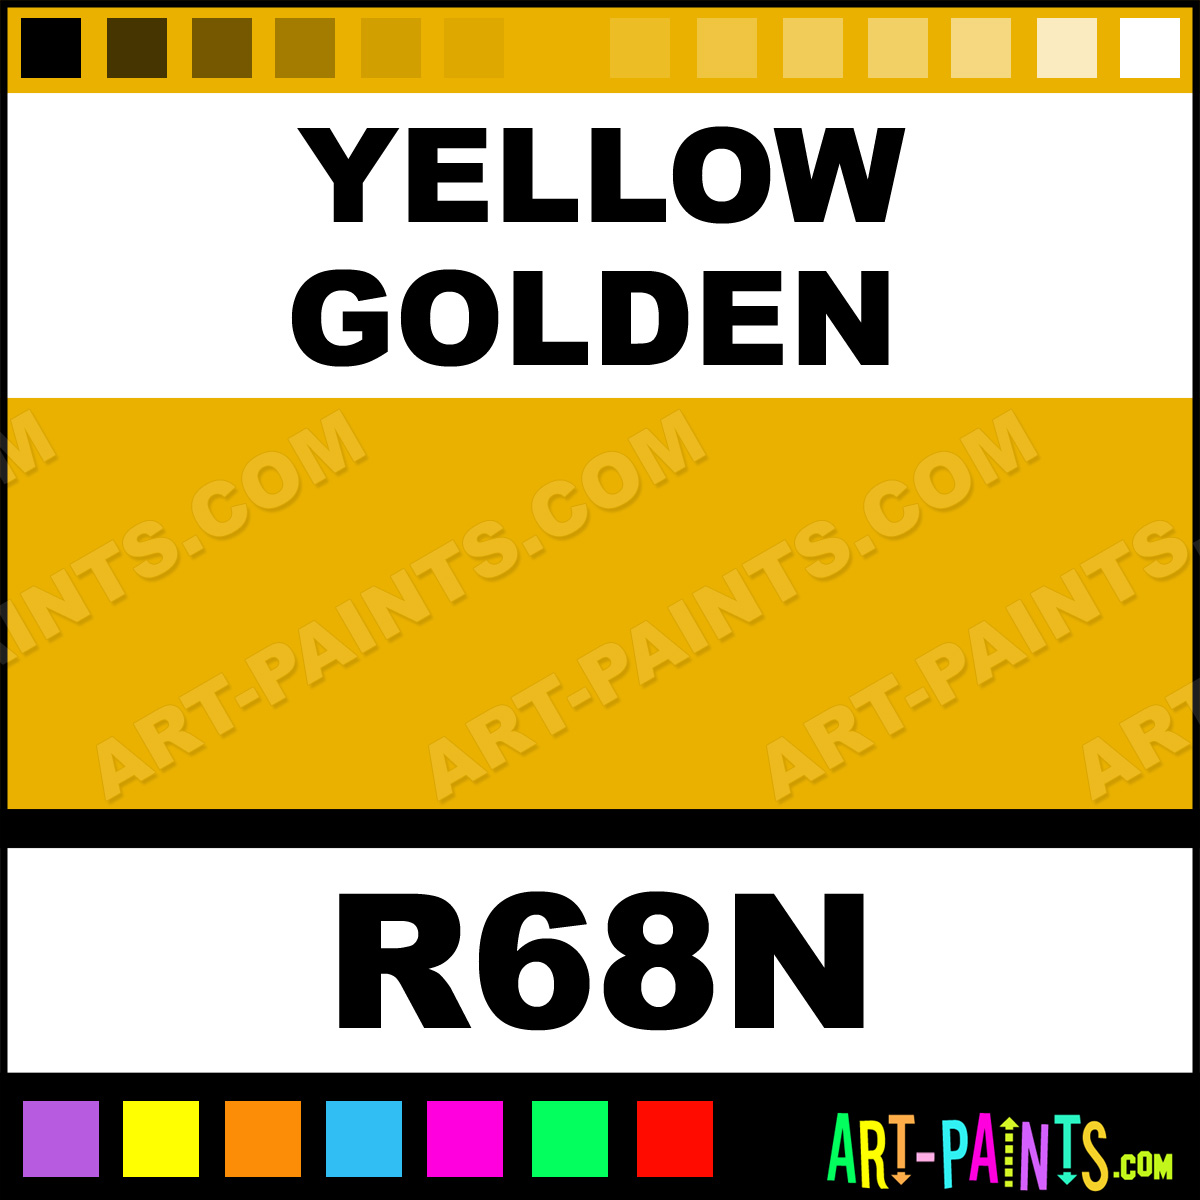 Yellow golden lacquer base stained glass and window paints for Golden yellow paint colors